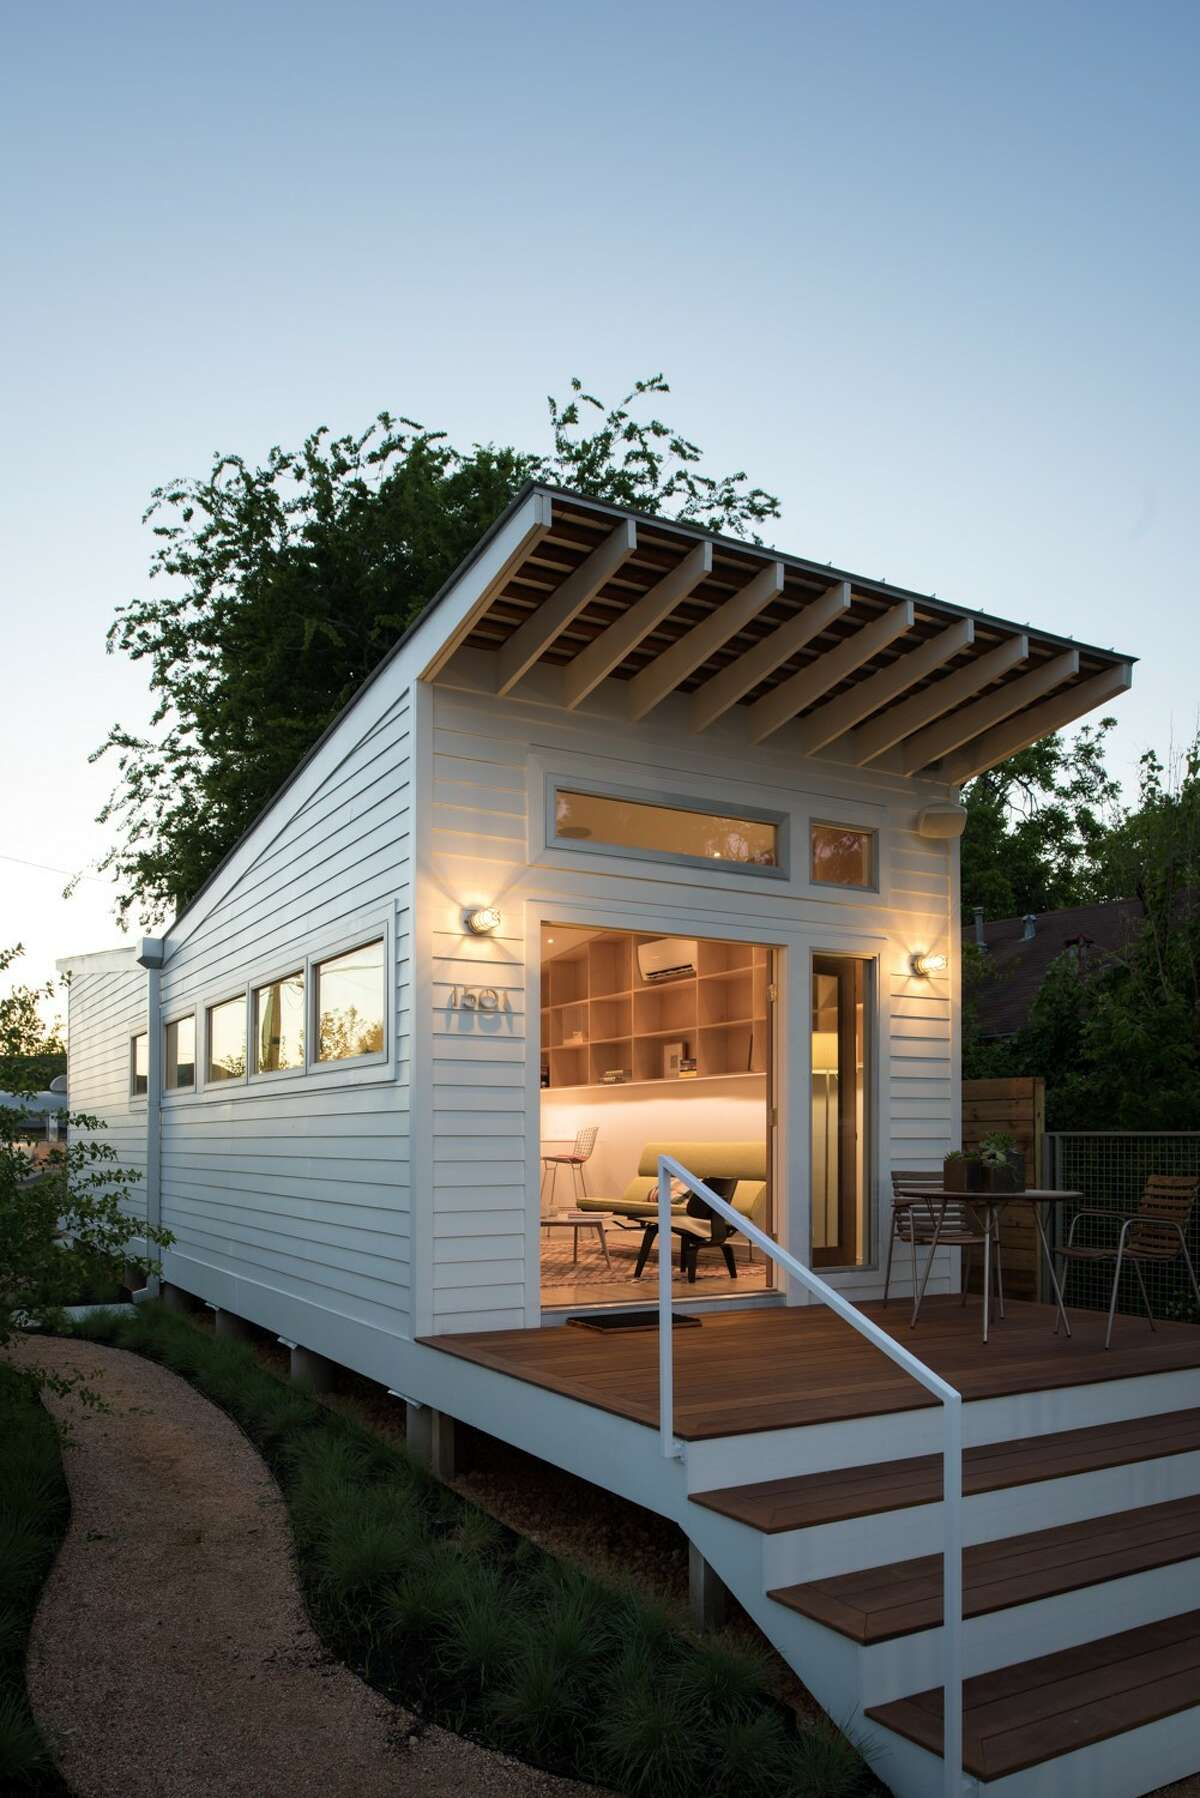 Diminutive homes with a sleek, clean design have become architect Brett Zamore's signature style. A tiny home community is now flourishing in Houston's East End Revitalized.